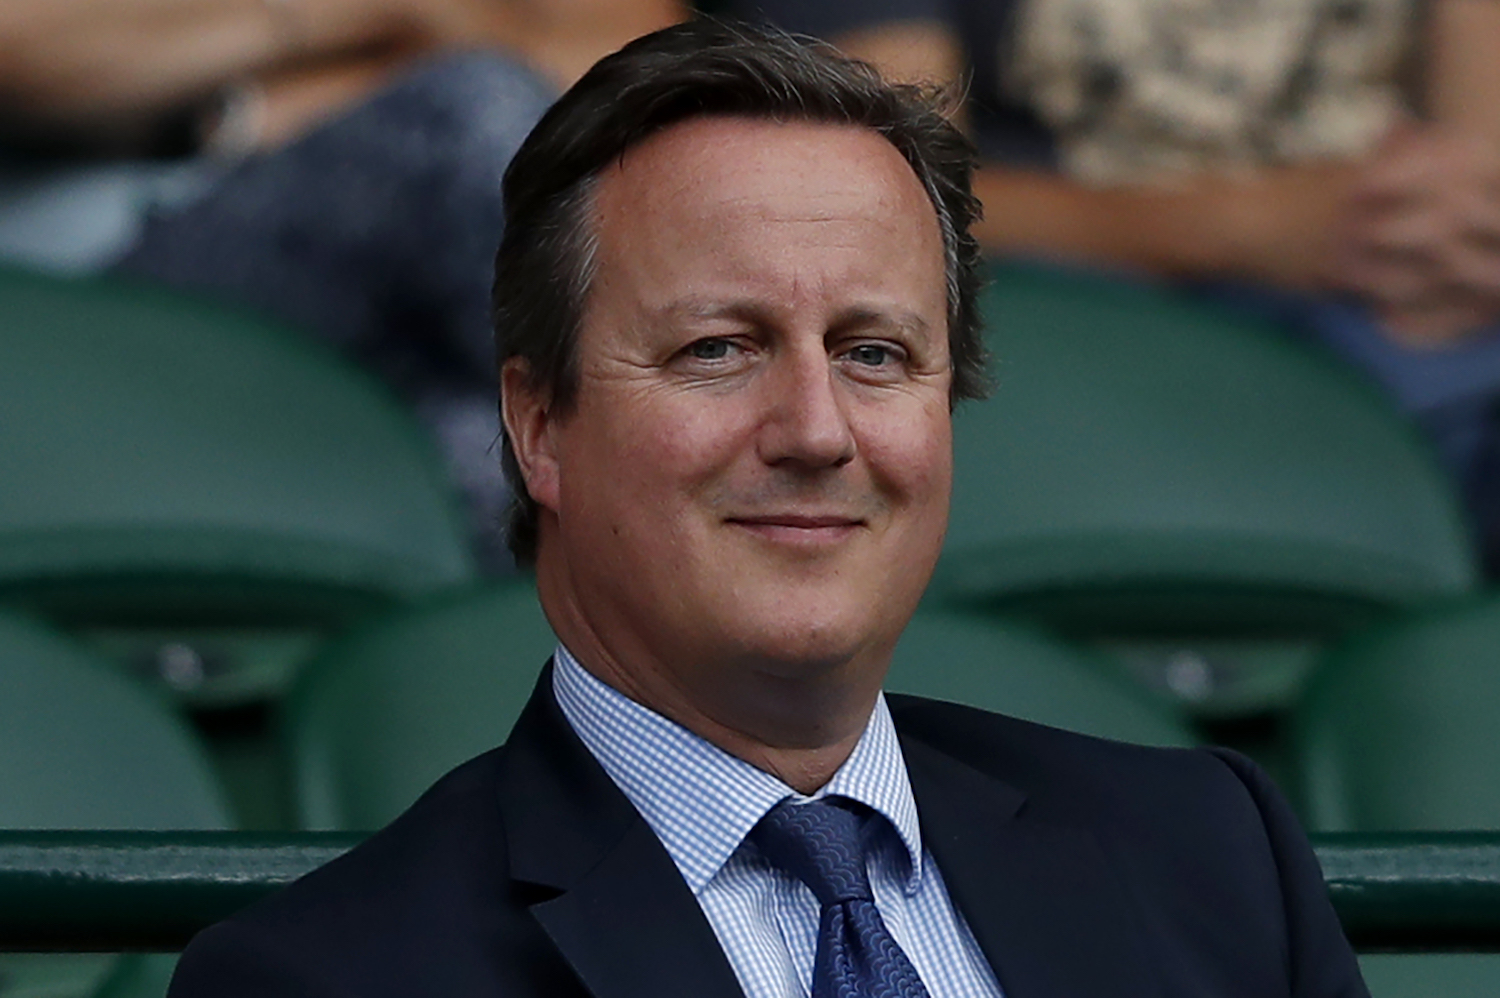 David Cameron Didn't Just Sell Out to China – Foreign Policy